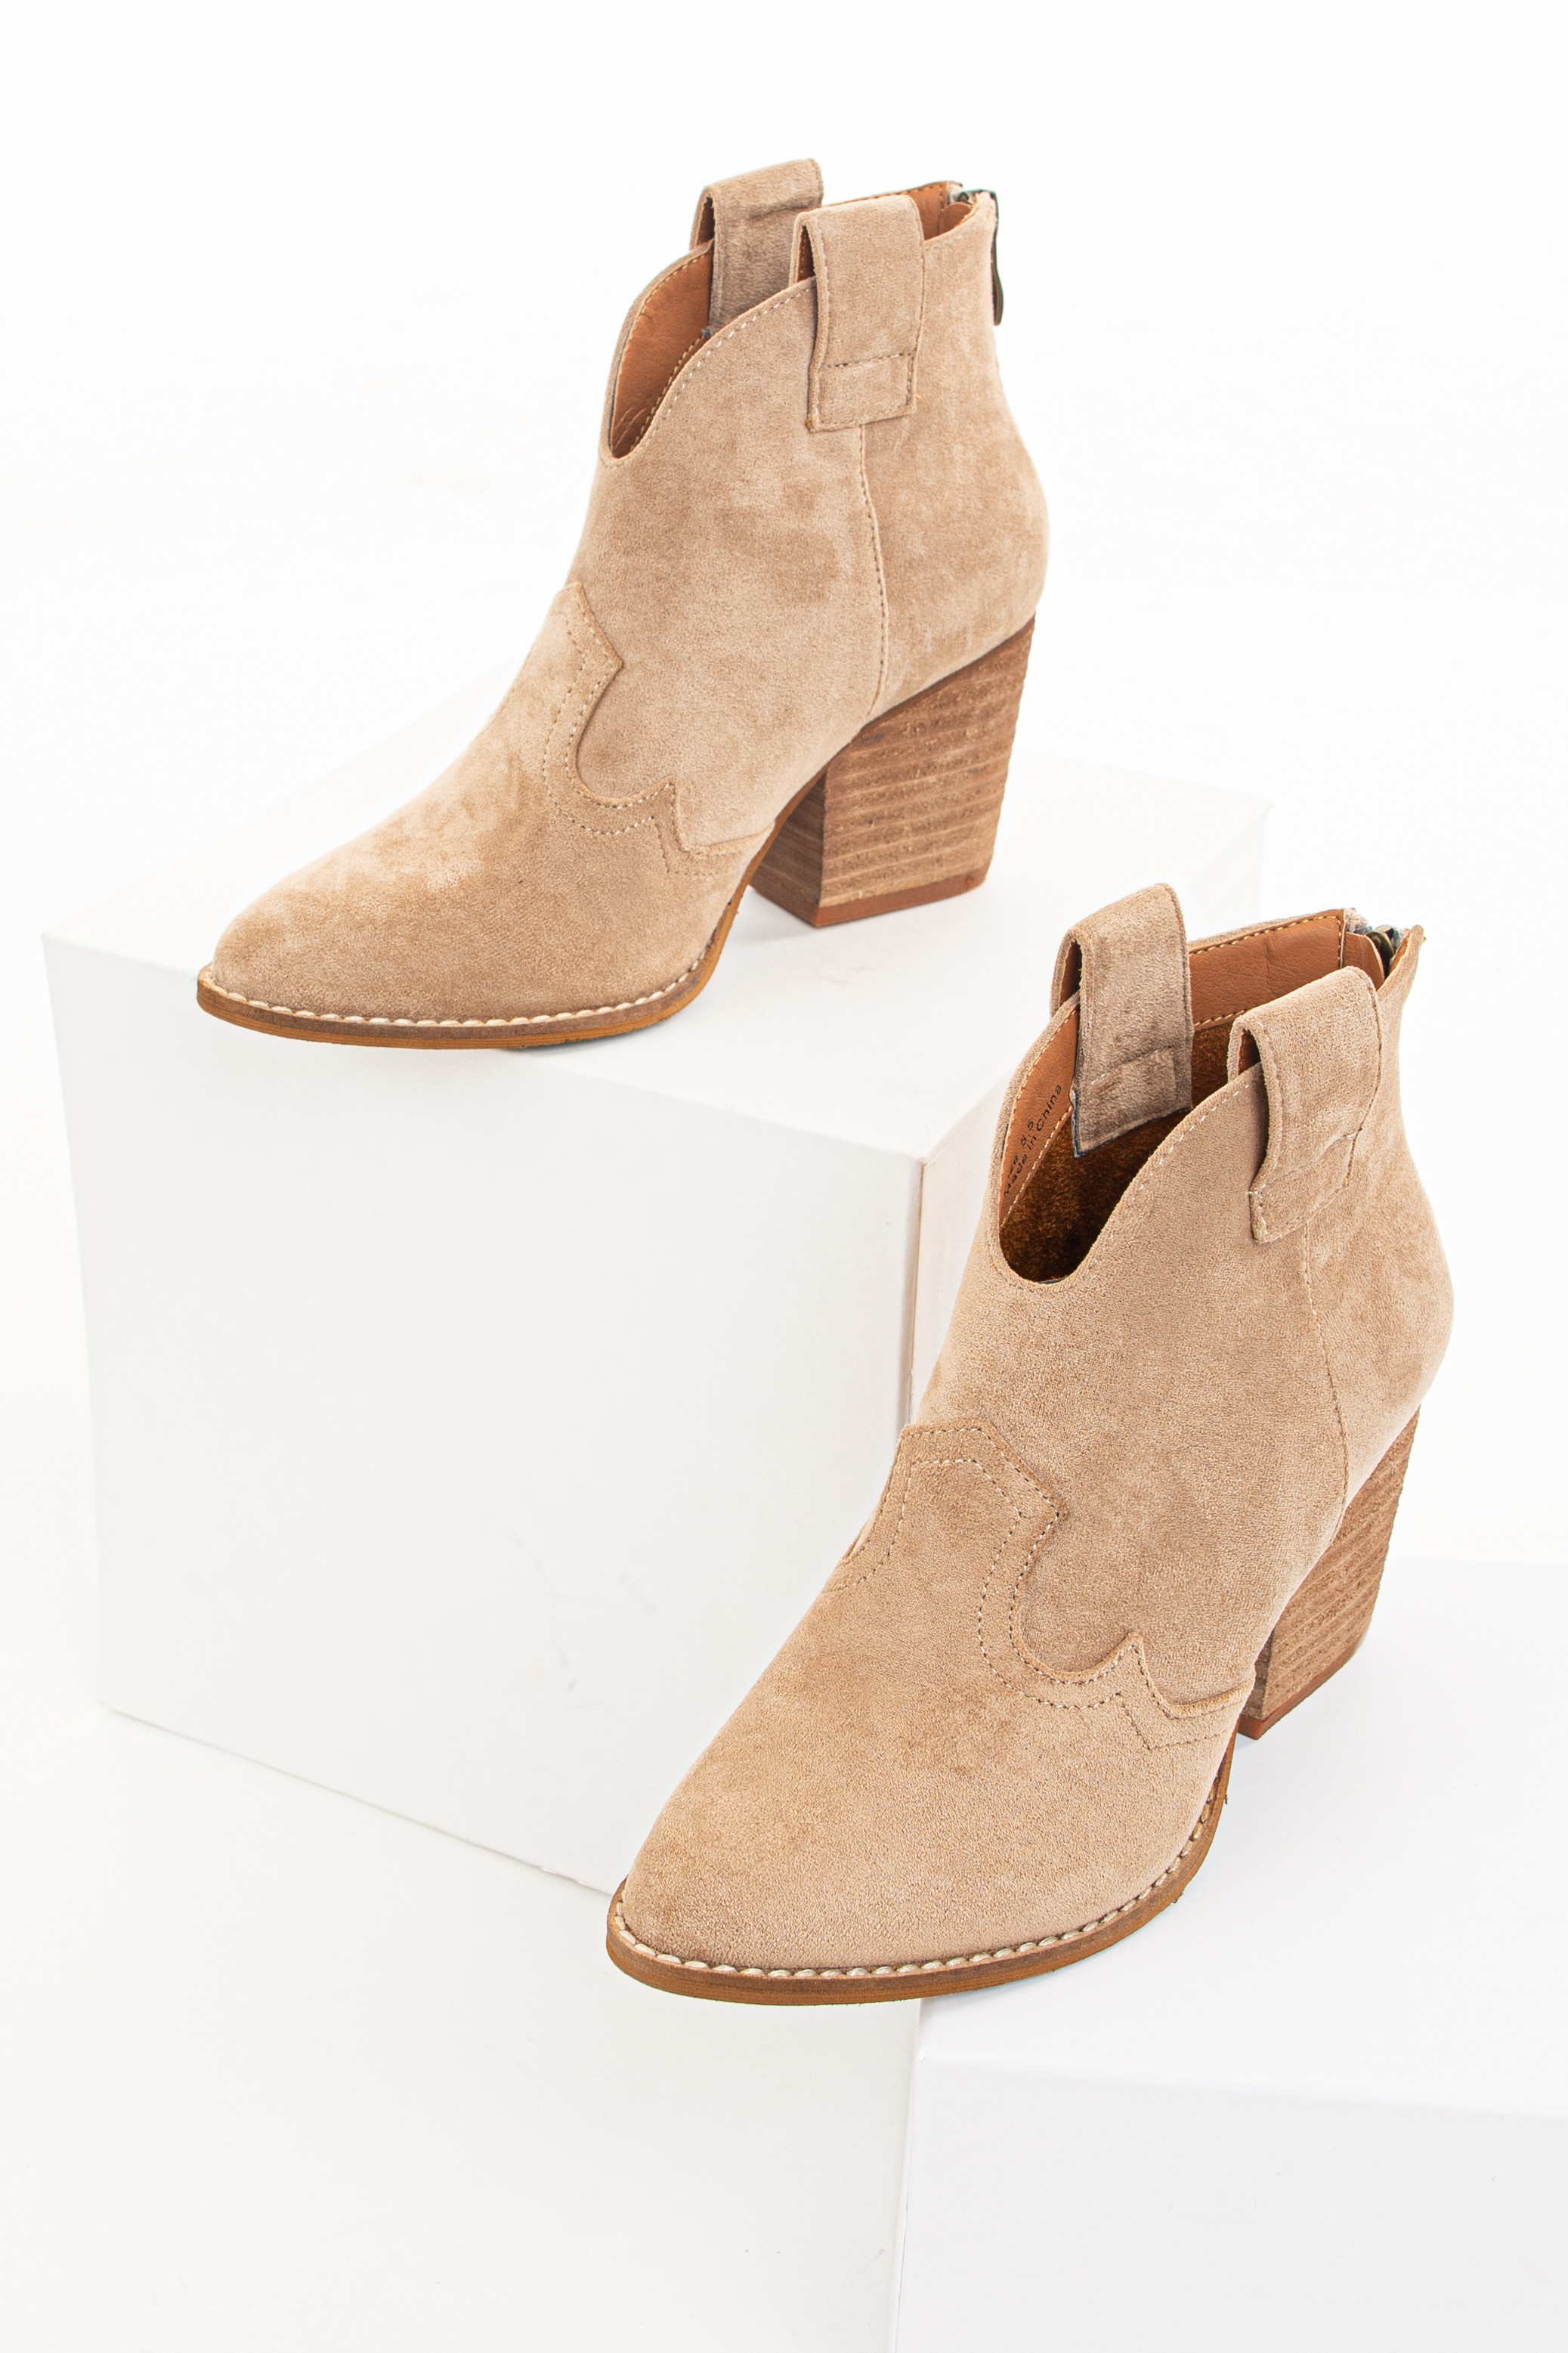 Tan Western Style Pointed Toe Heeled Booties